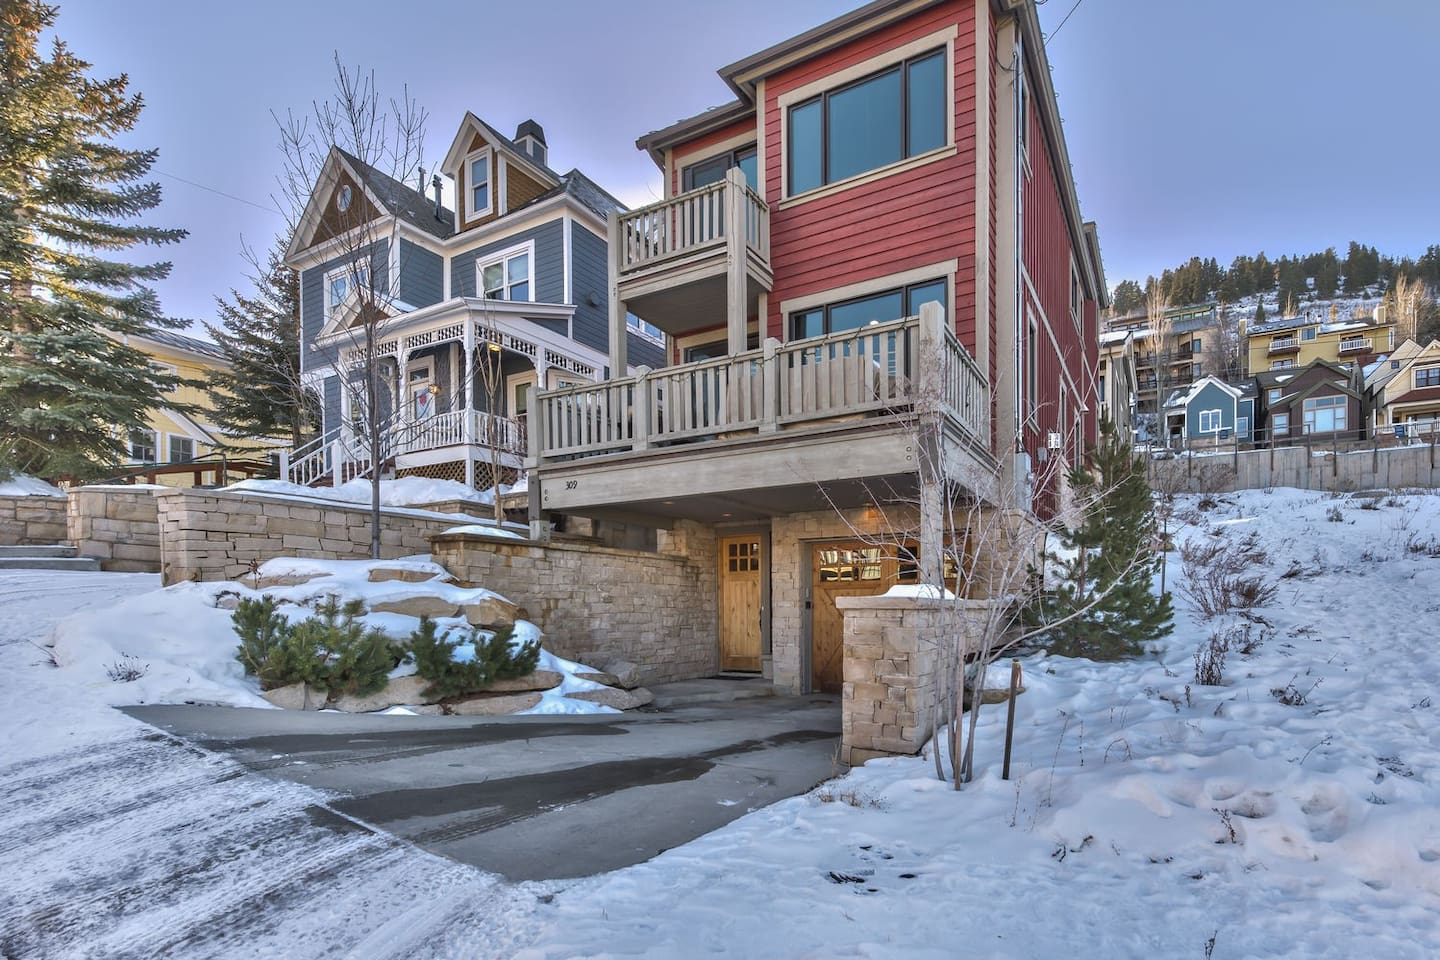 Park City Old Town Manor - 4 Bedroom Park Avenue Retreat - Walk to Ski and to Main Street!